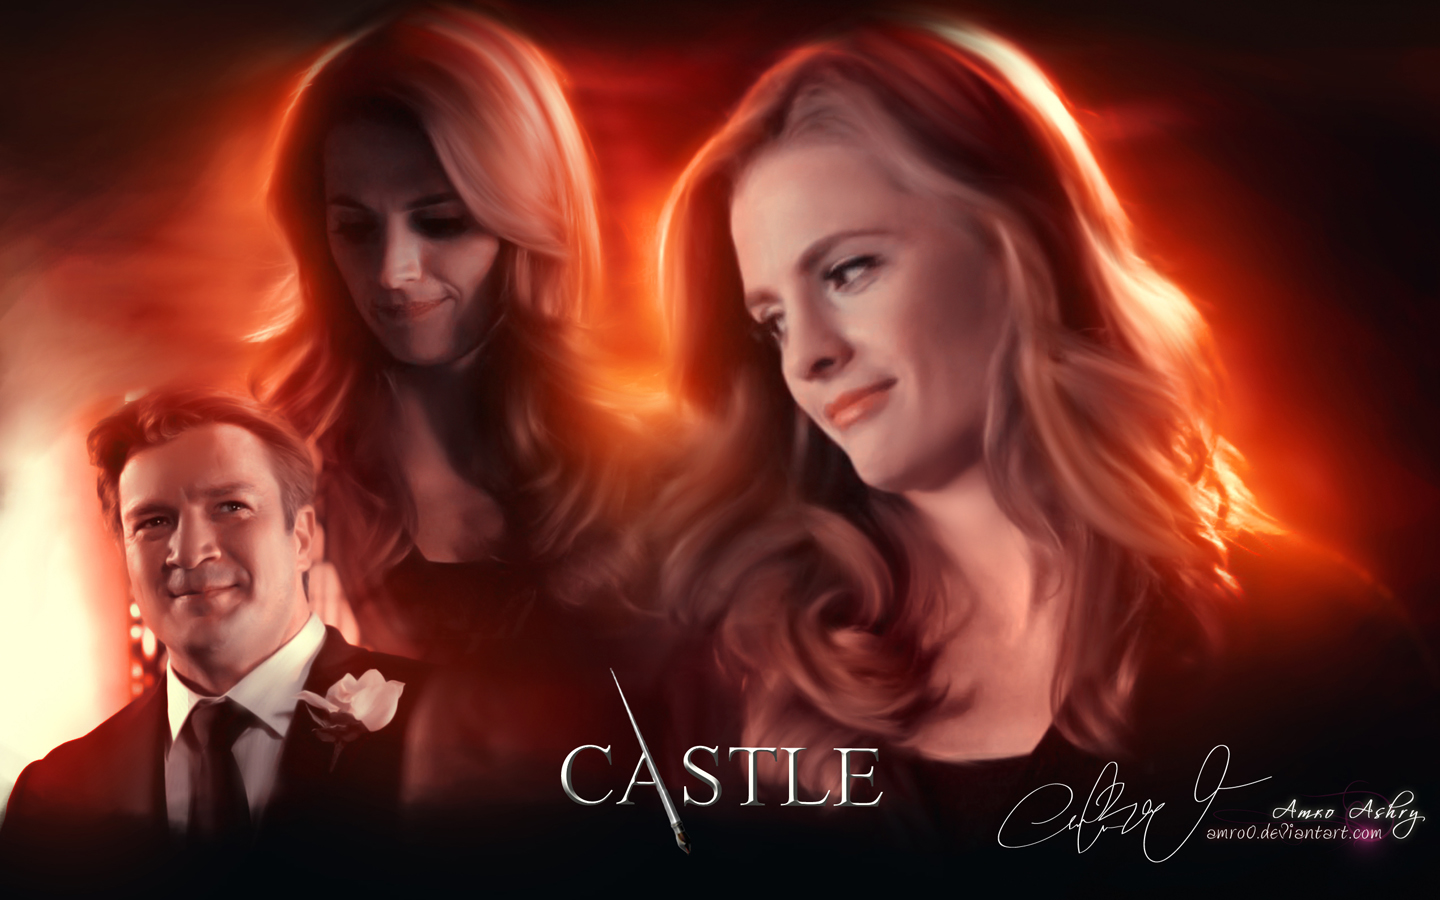 Castle Castle Tv Show Wallpaper: yousearch.co/images/castle+(tv+series)